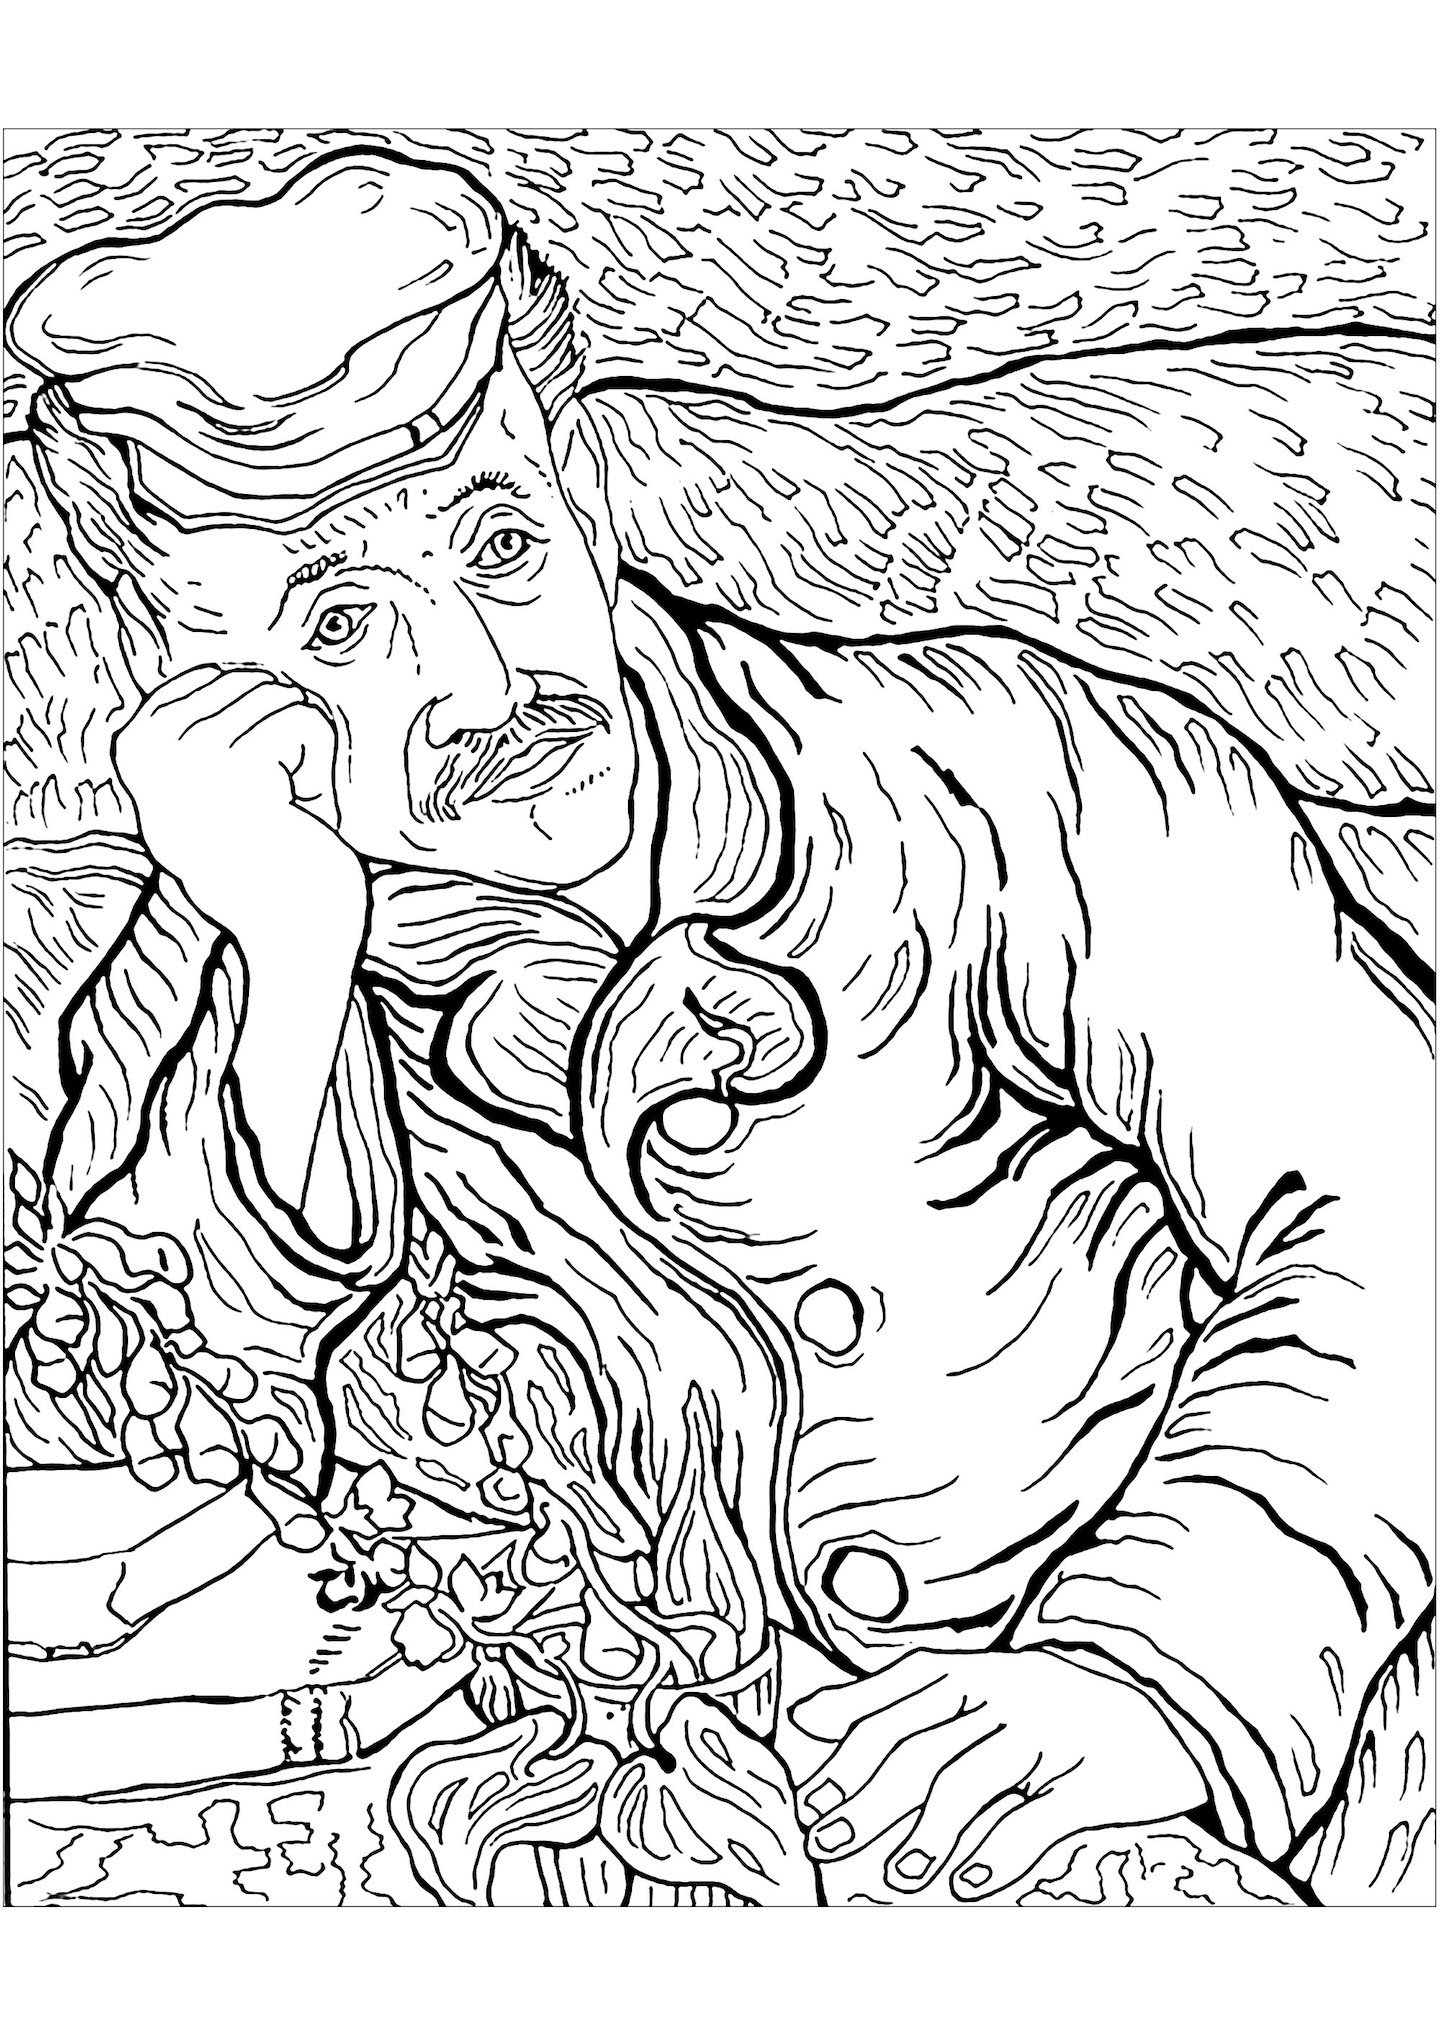 masterpiece coloring pages the top 10 coloring page masterpieces on the internet coloring masterpiece pages